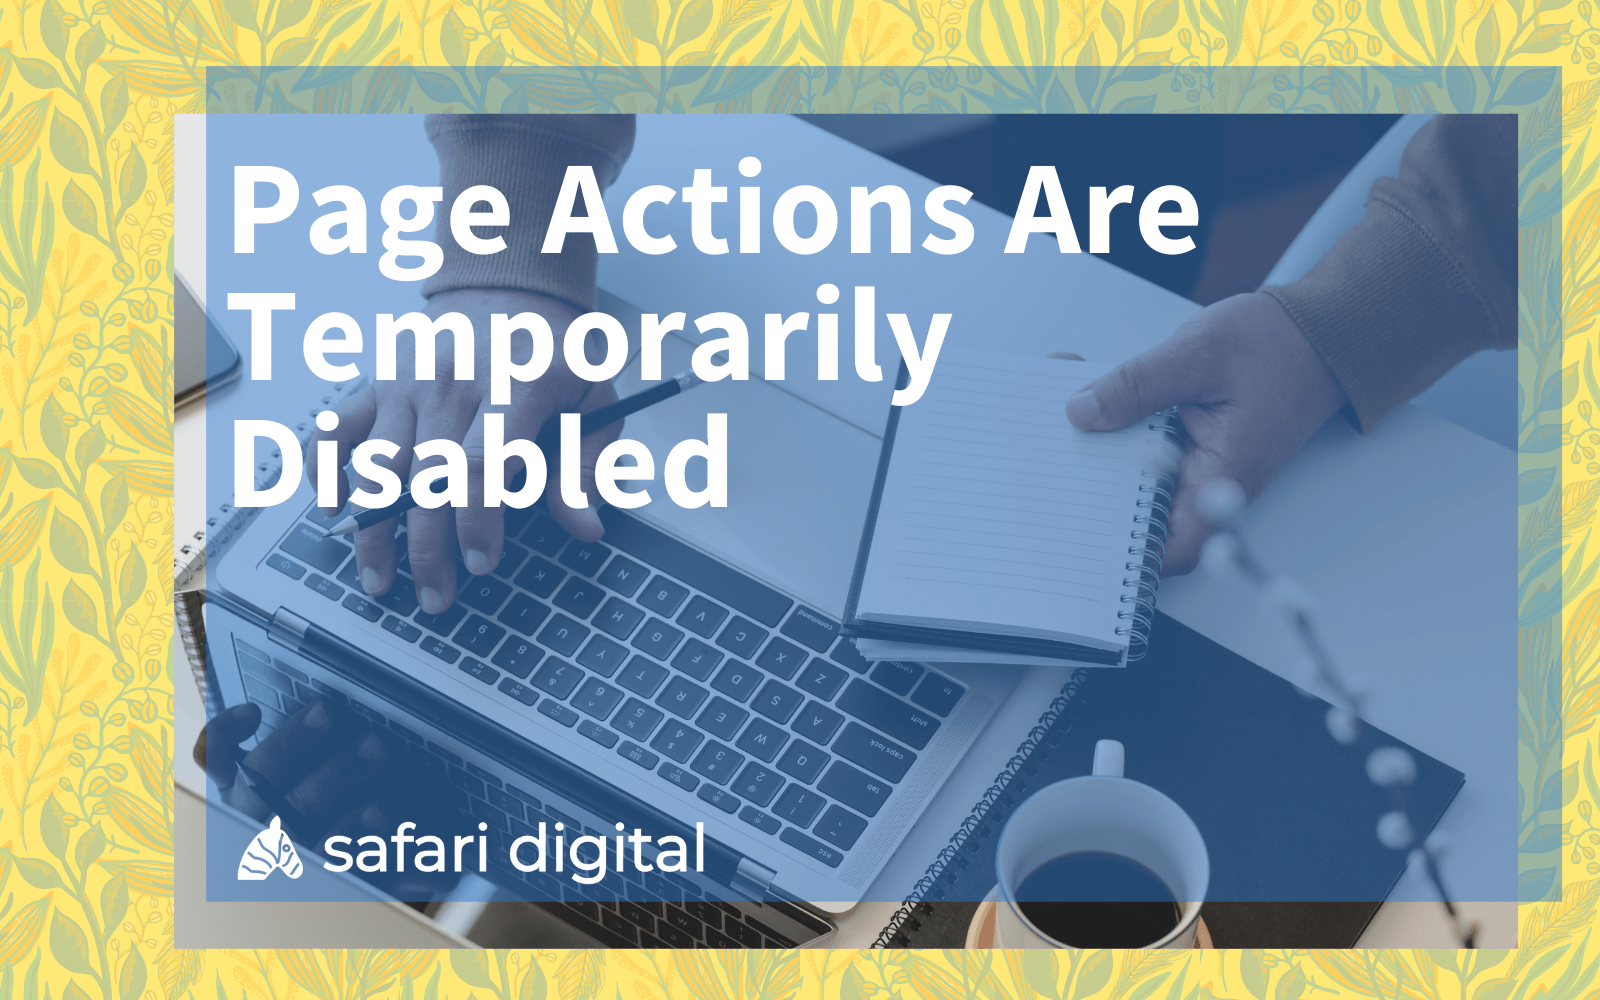 Page Actions Are Temporarily Disabled cover image